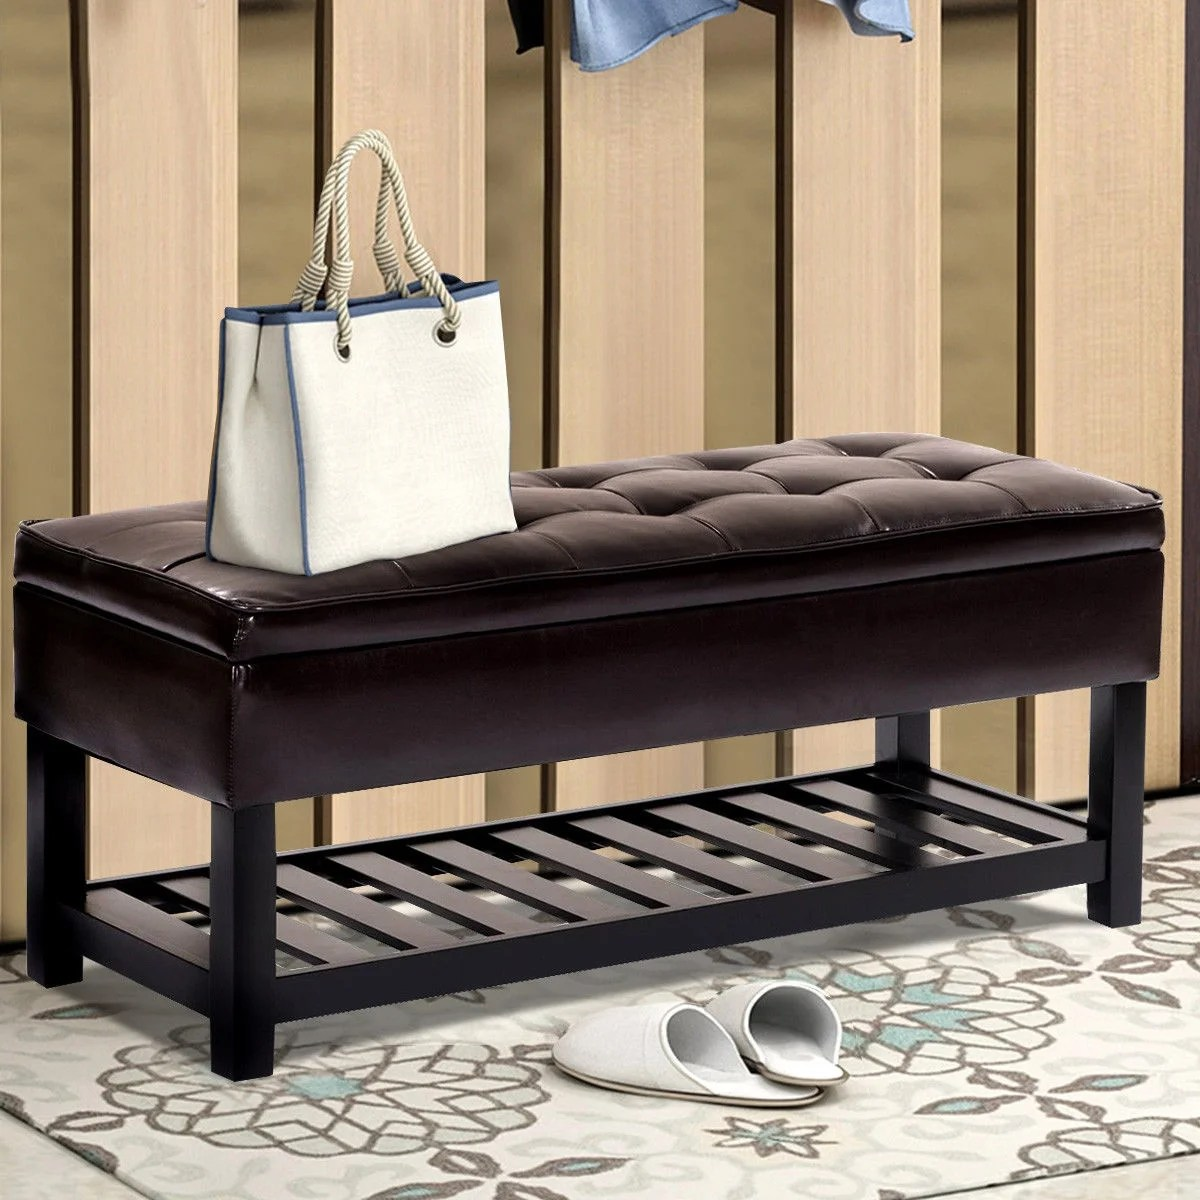 Storage Bed Bench Shoe Rack Entryway Furniture Pu Leather Ottoman Organizer Overstock 29258381